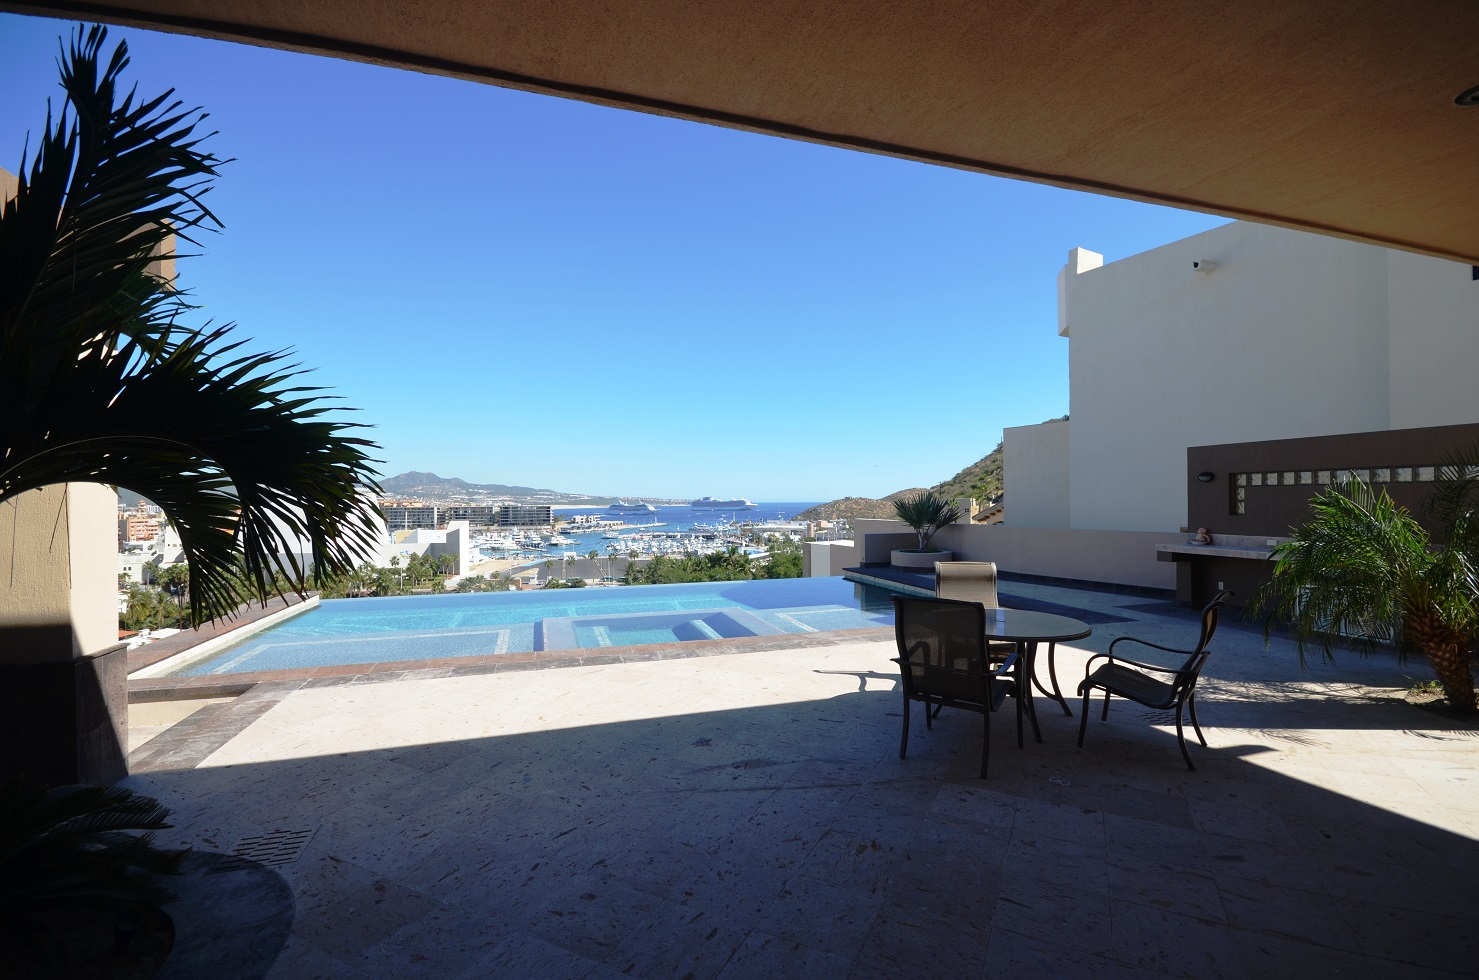 Casa Lucazi - Marina View - Baja International Realty - BIR - Bircabo